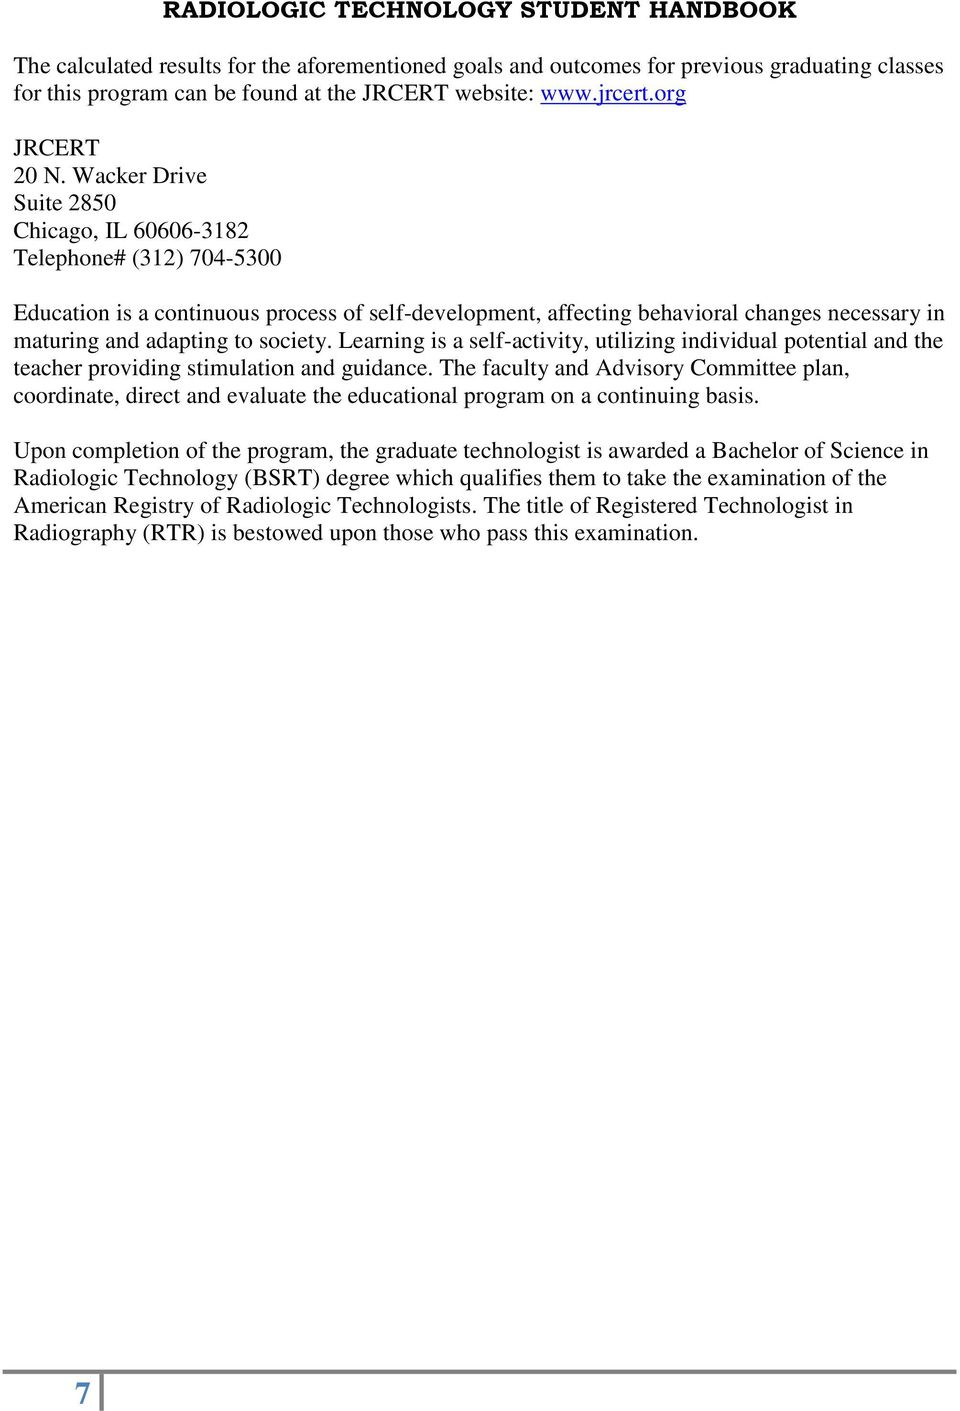 society. Learning is a self-activity, utilizing individual potential and the teacher providing stimulation and guidance.